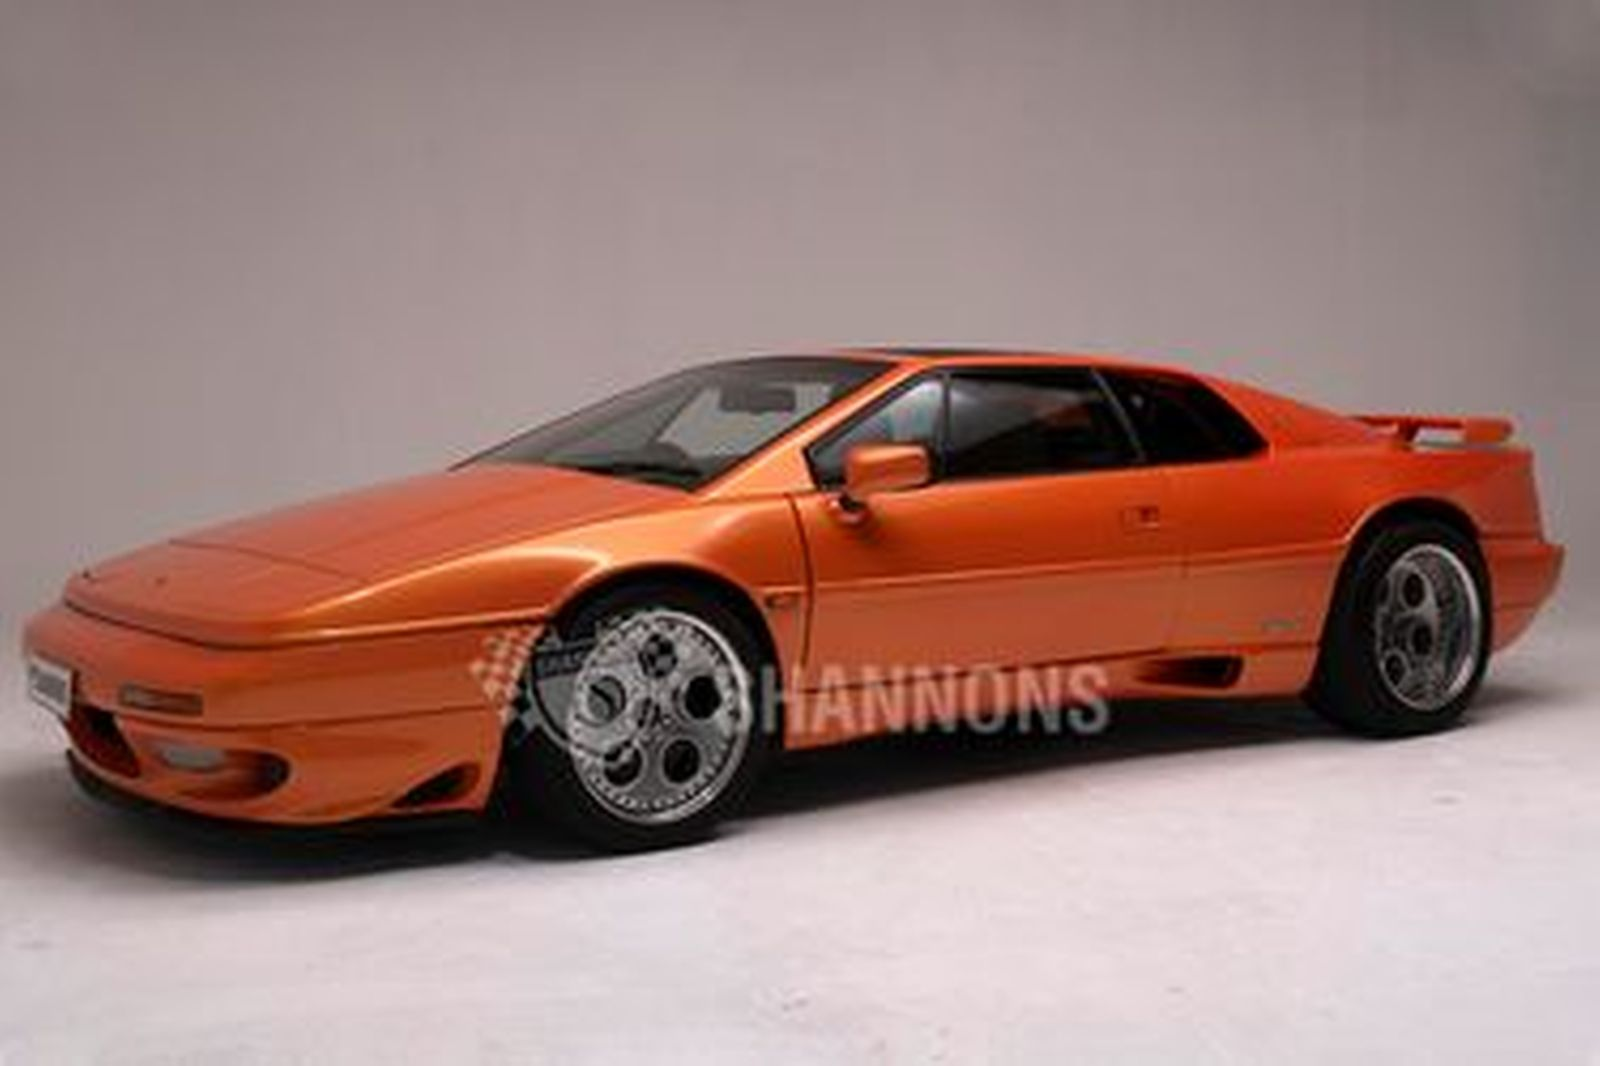 Lotus Esprit Turbo 'Wide Body' Coupe